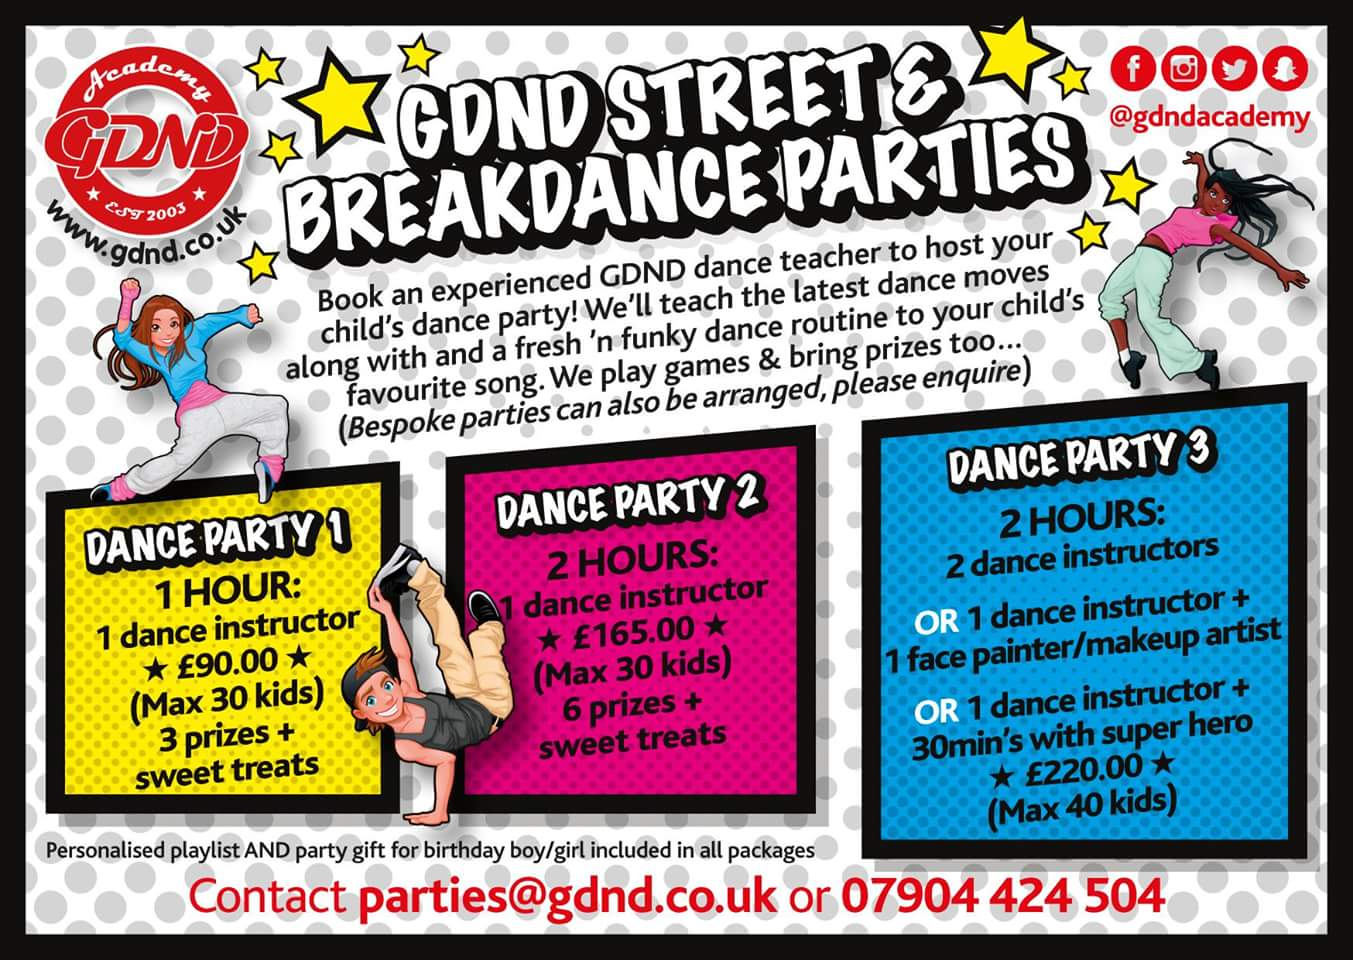 Dance Parties South East London - Childrens birthday party ideas east london